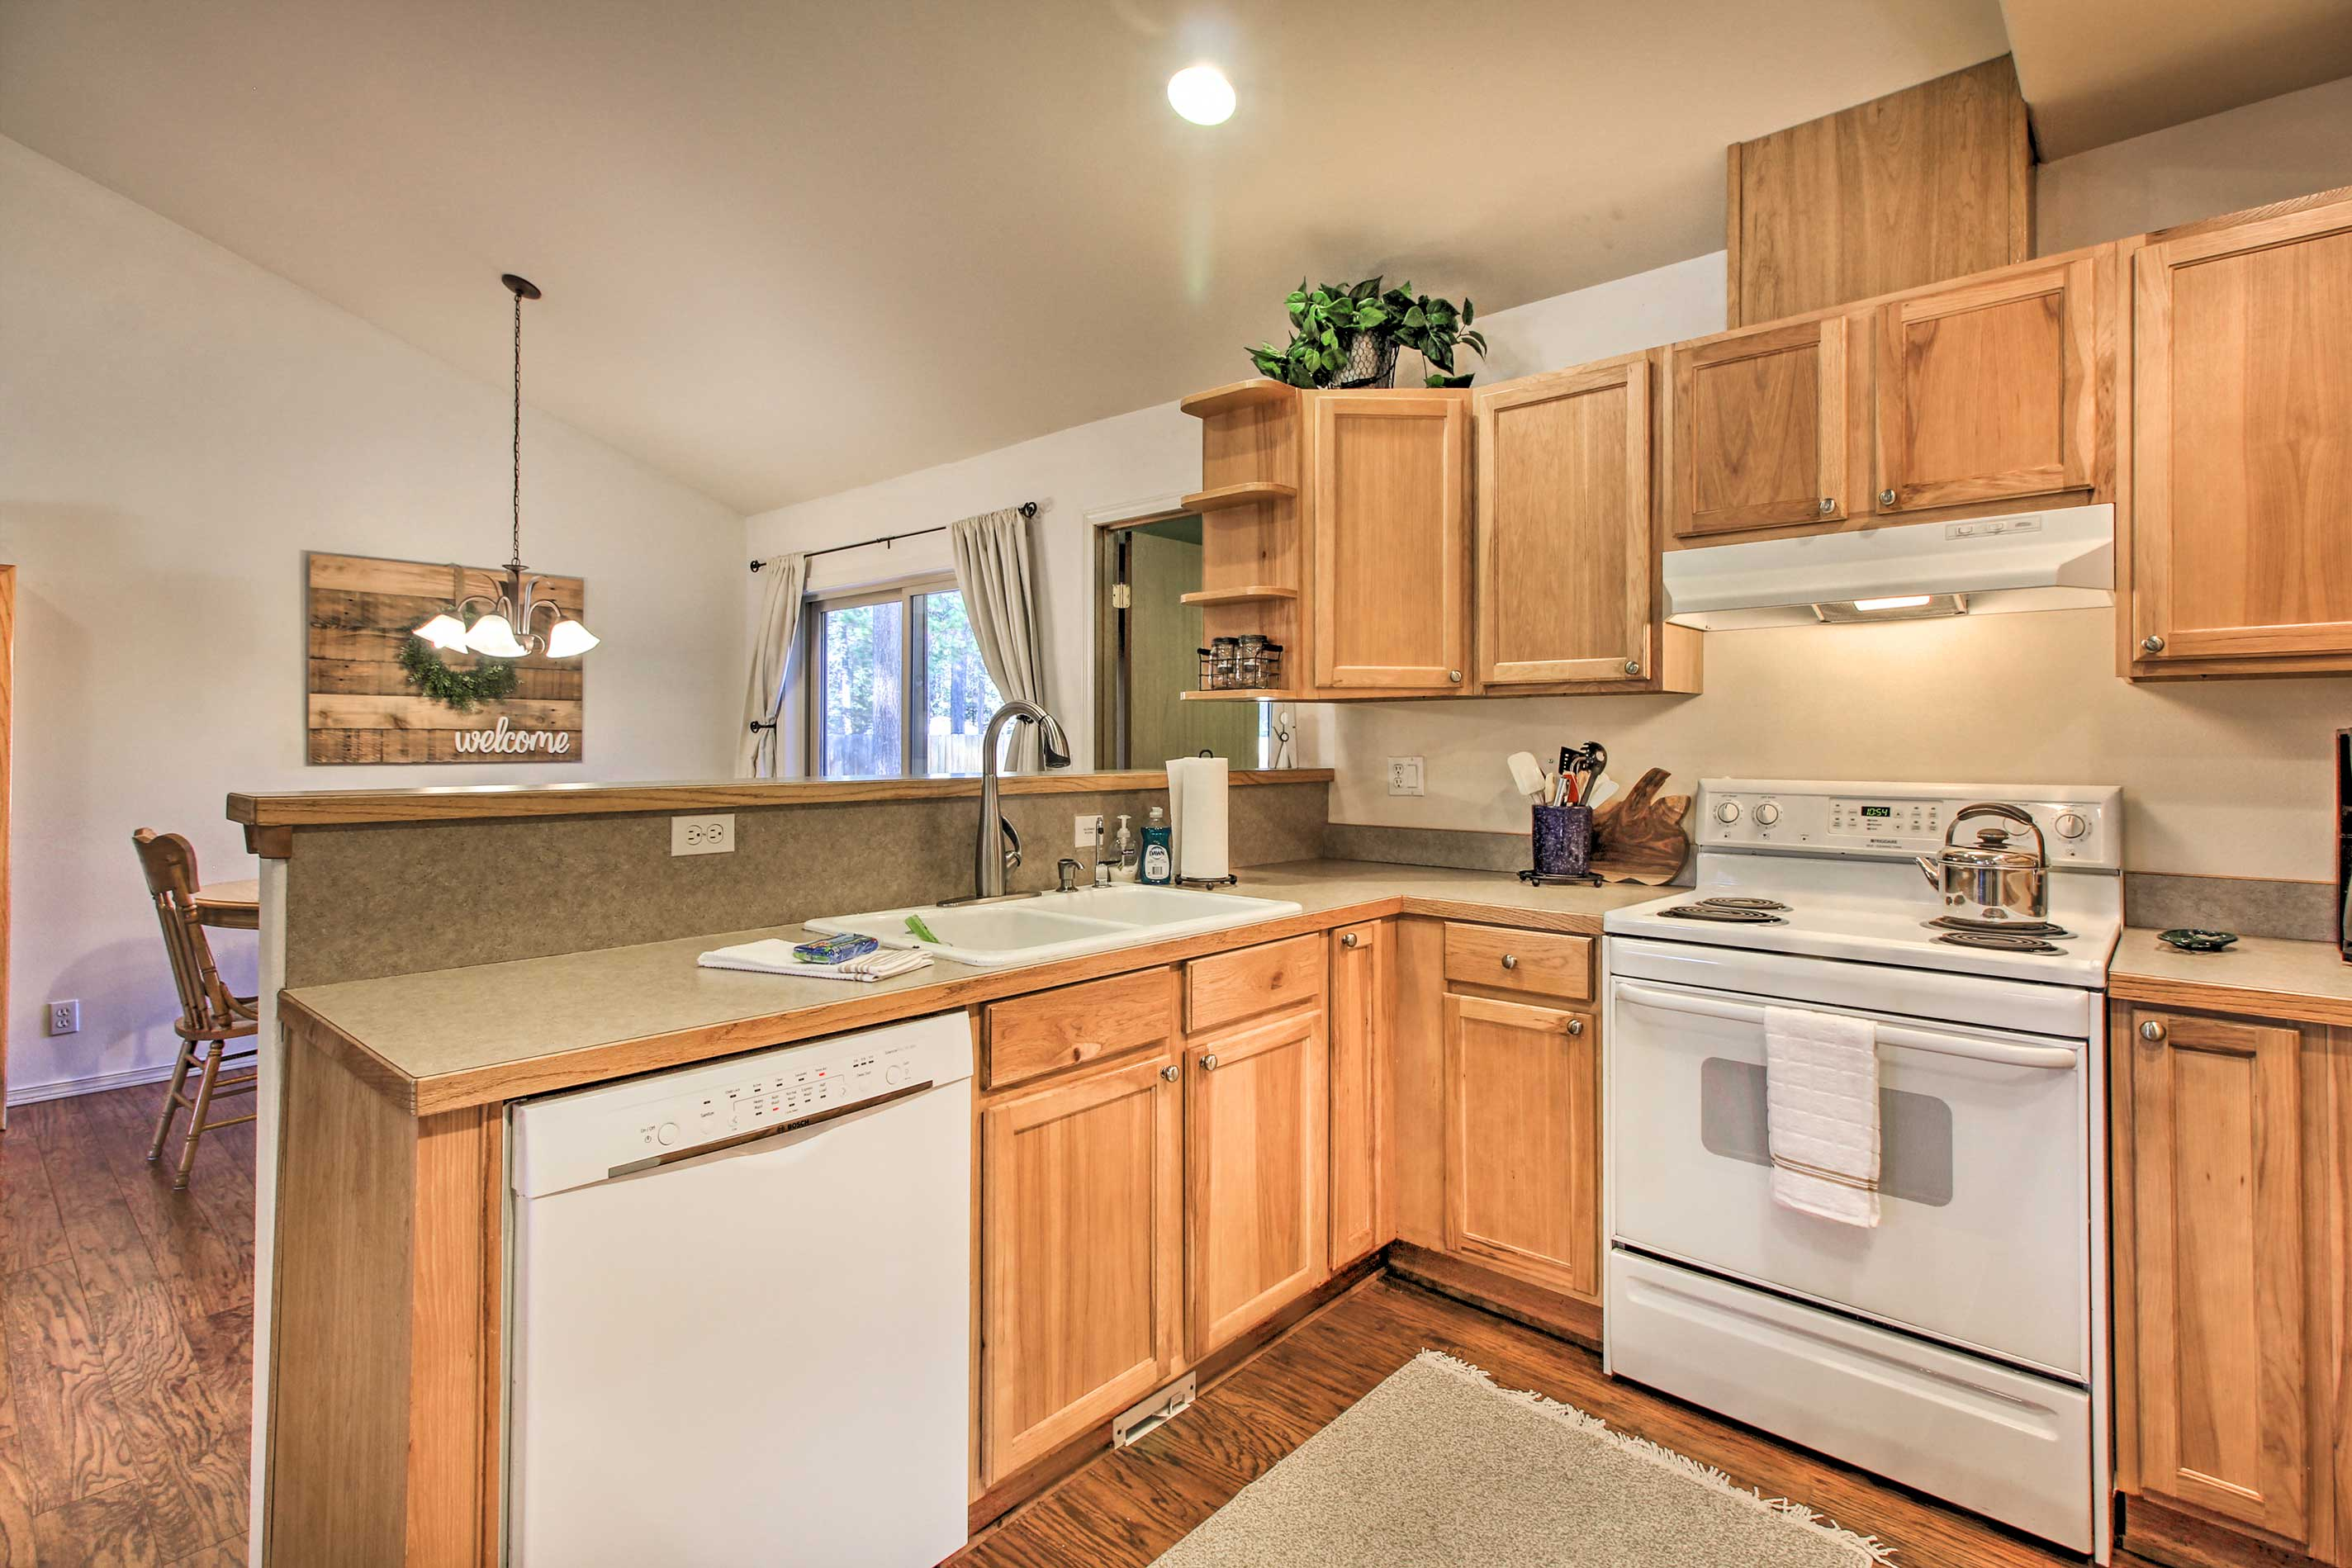 You'll love whipping up your favorite recipes in this fully equipped kitchen.